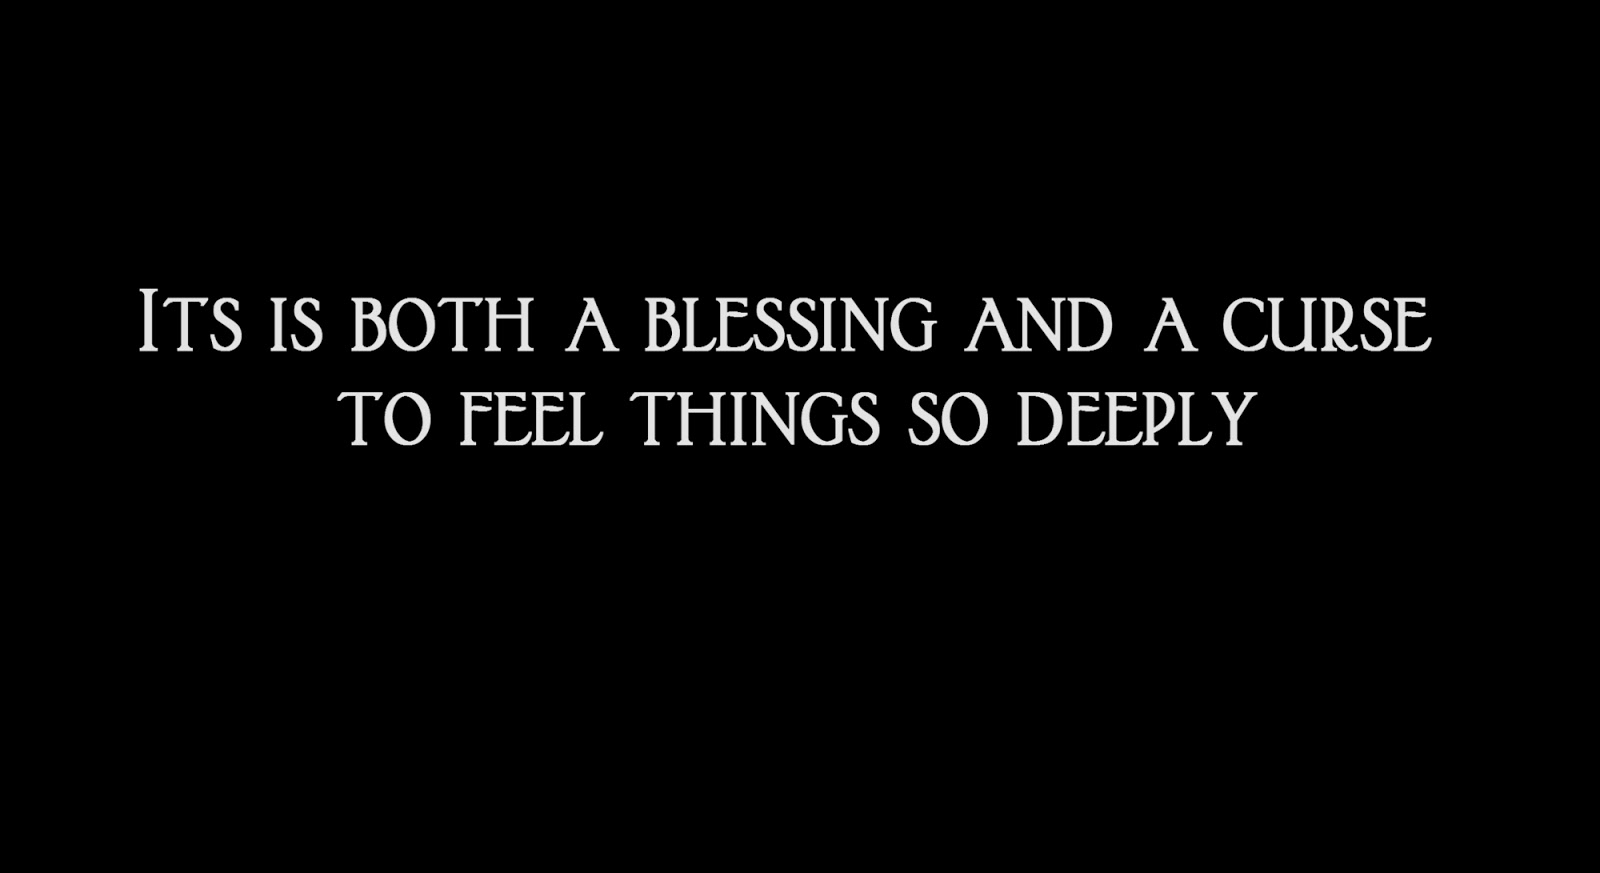 Its is both a blessing and a curse to feel things so deeply